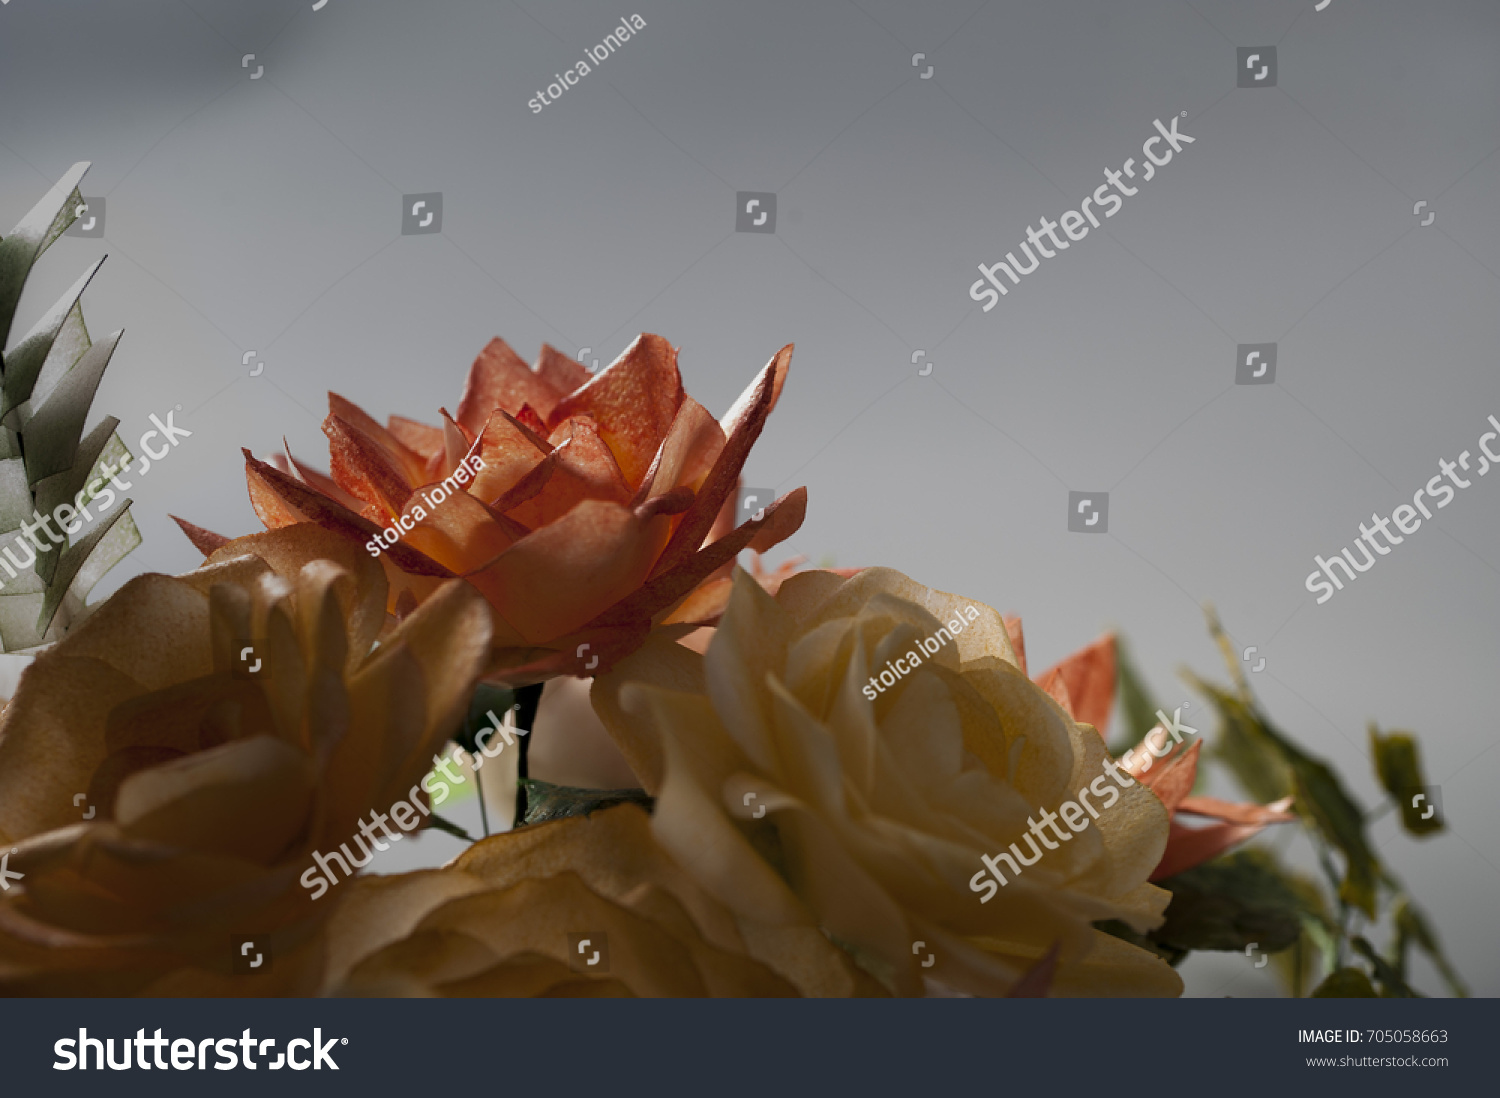 Edible Wafer Paper Flowers Stock Photo Edit Now 705058663